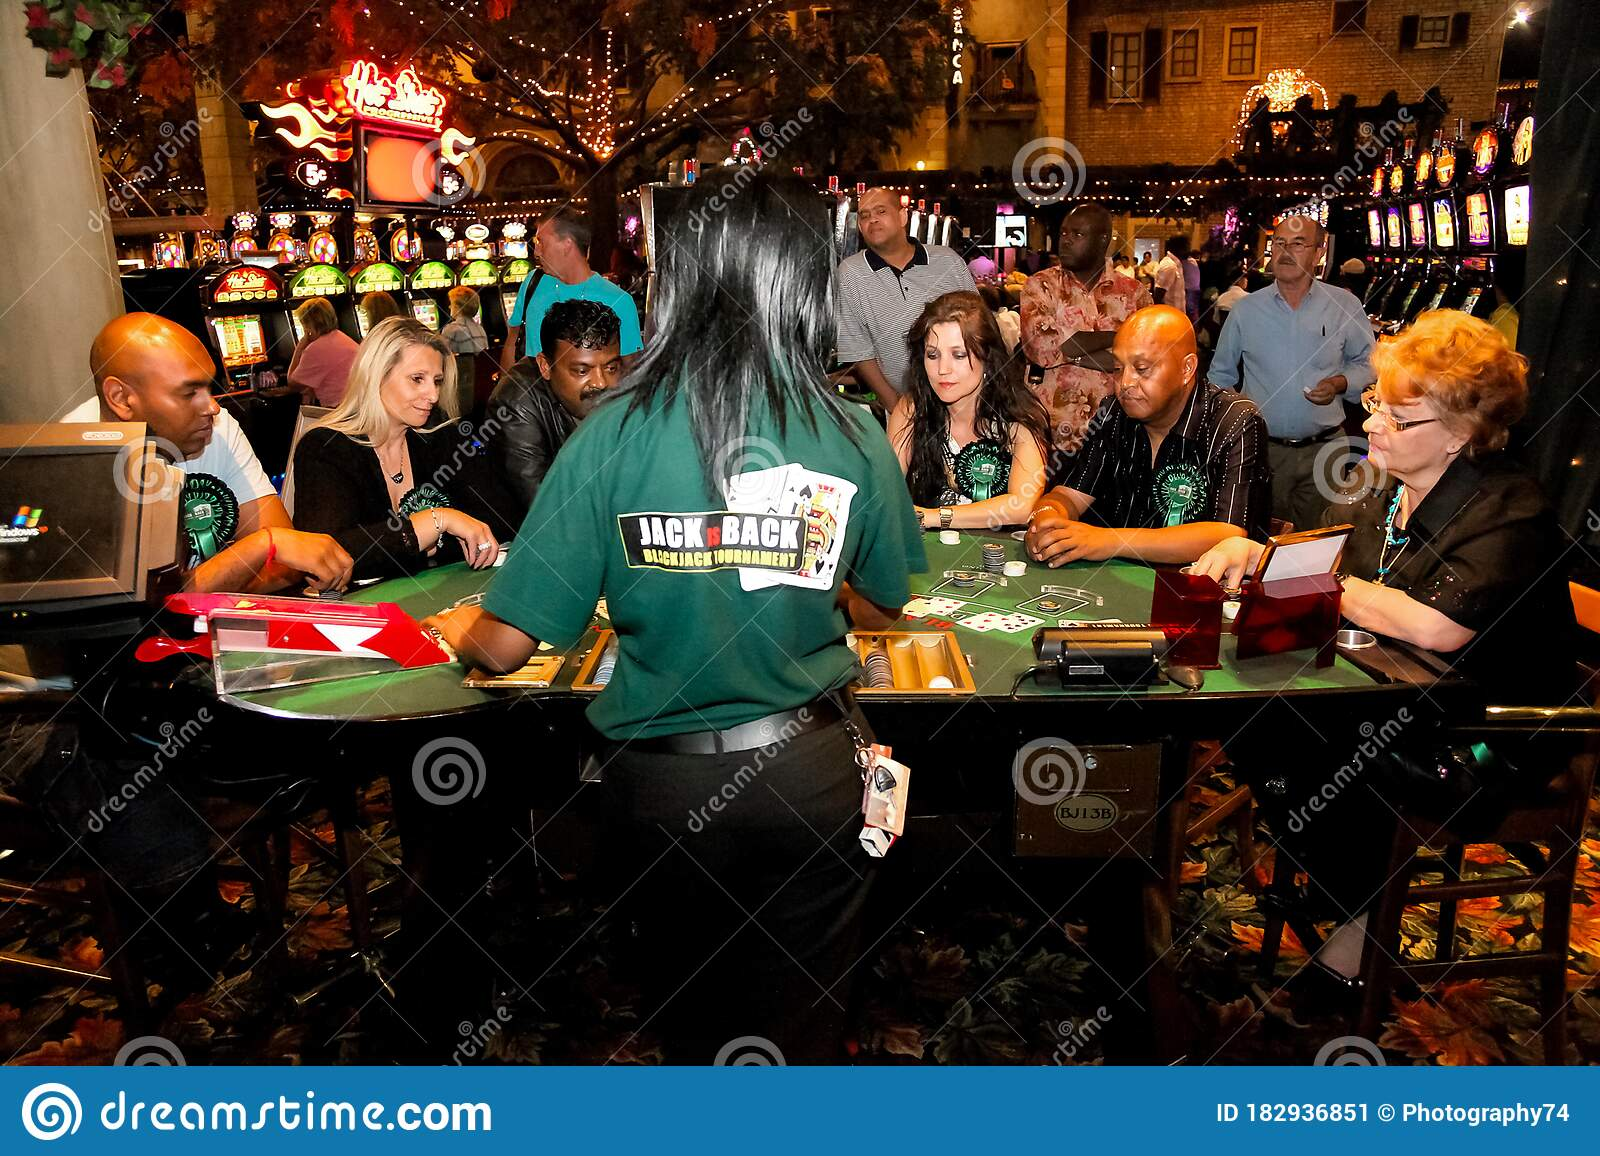 Diverse People Playing Blackjack Card Game At Casino Table Editorial Photo Image Of Cards Lifestyle 182936851